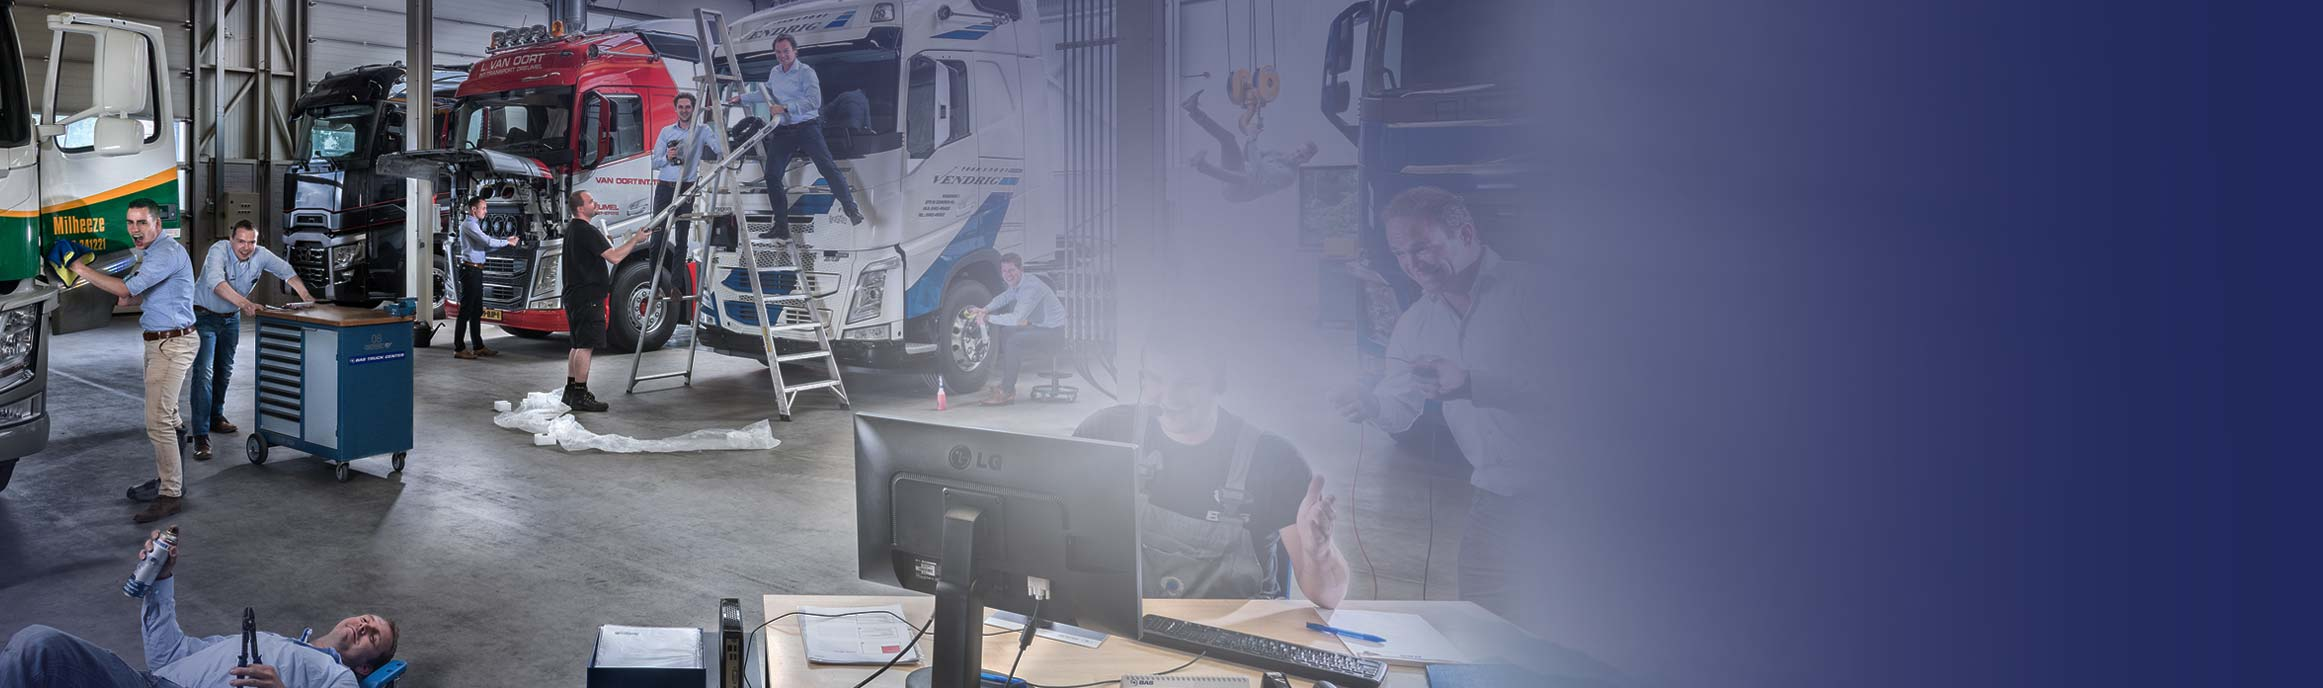 Global Truck Concept collega's